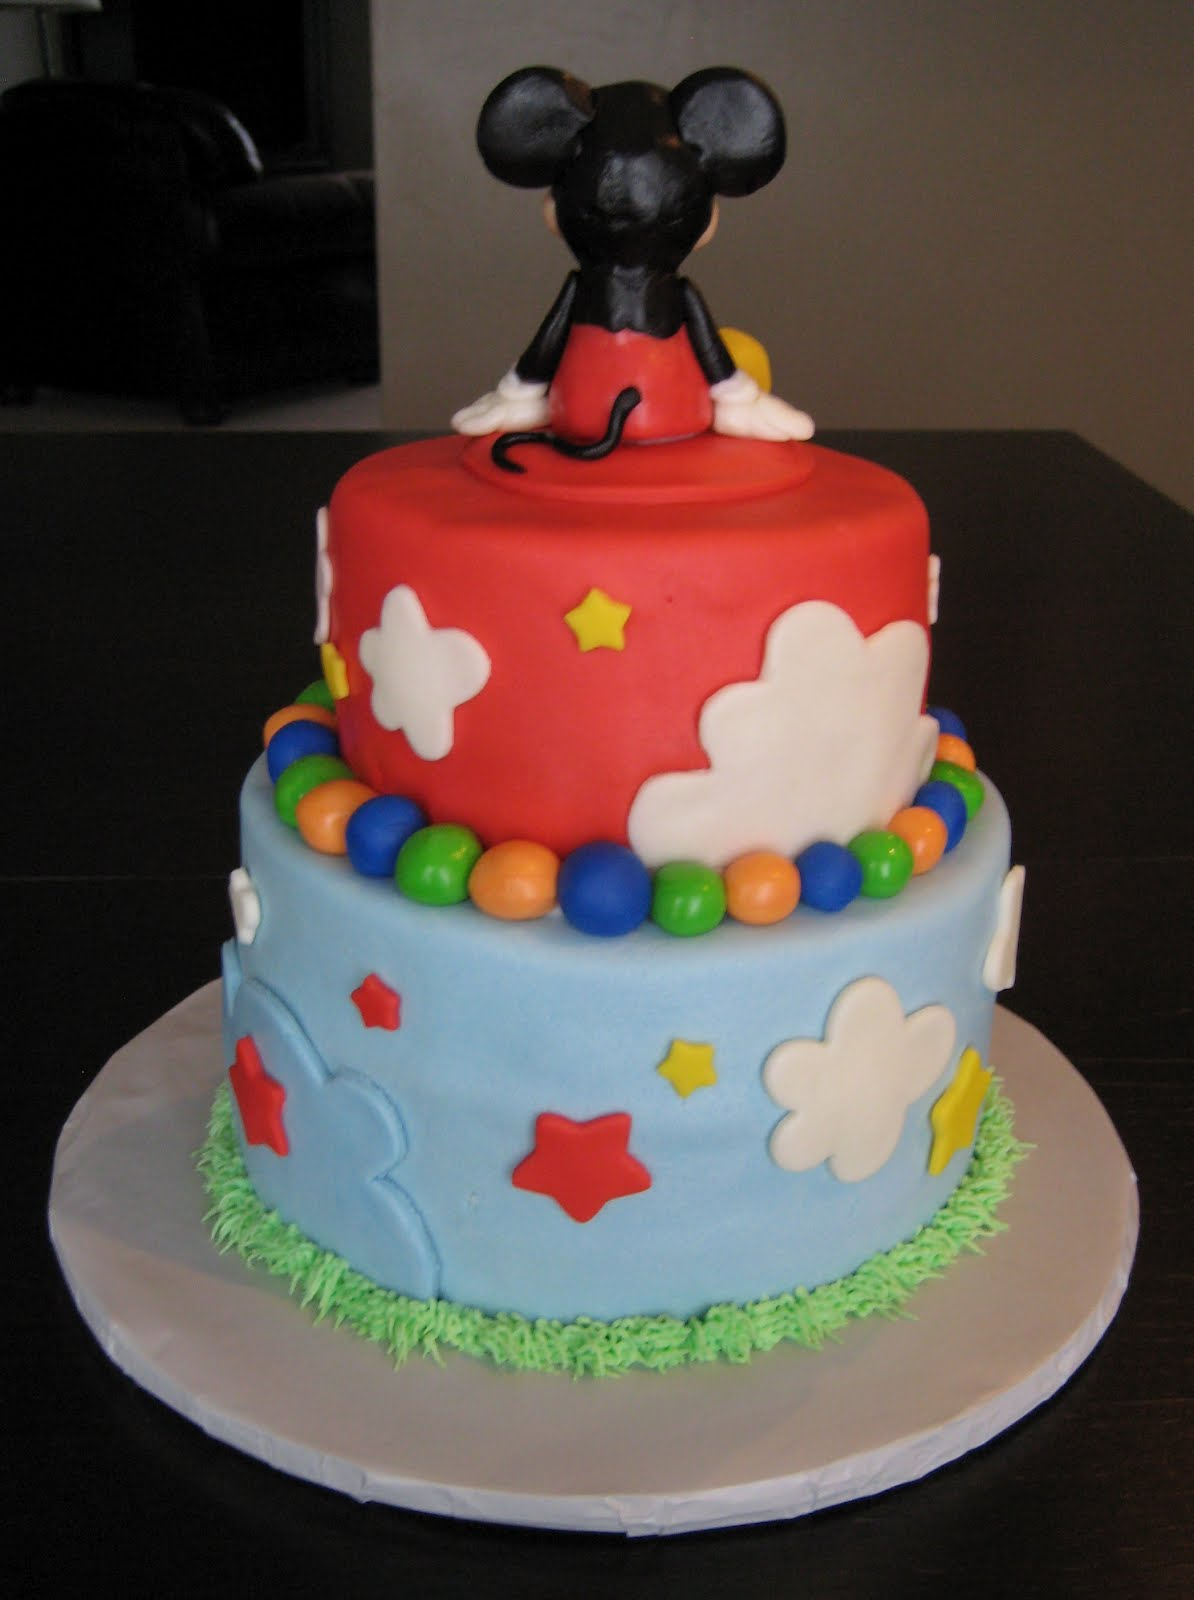 Cake Images Of Mickey Mouse : Custom Cakes by Julie: Mickey Mouse Clubhouse Cake IV